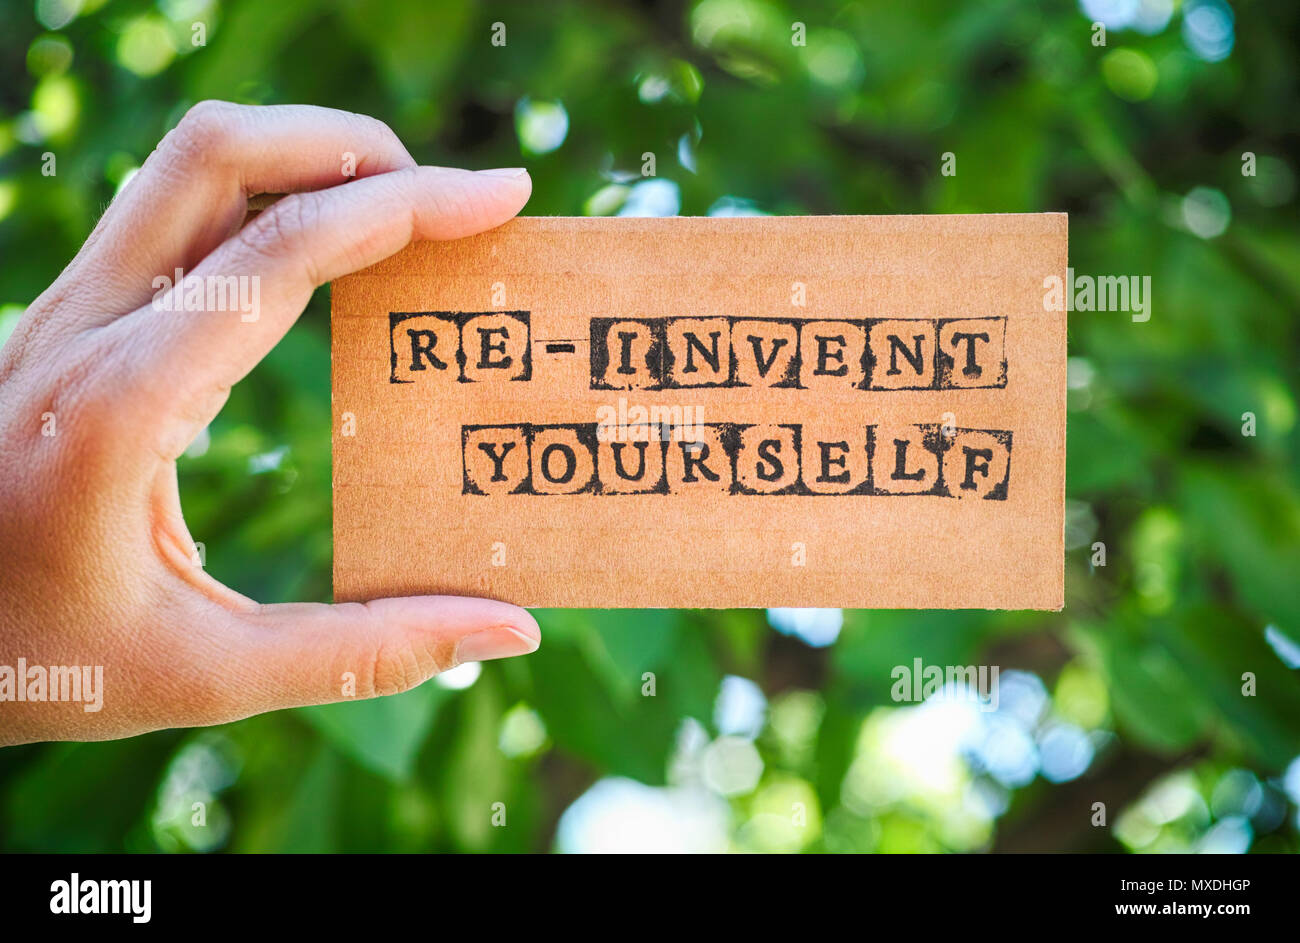 Woman hand holding cardboard card with words Re-Invent Yourself made by black alphabet stamps against green nature background. - Stock Image